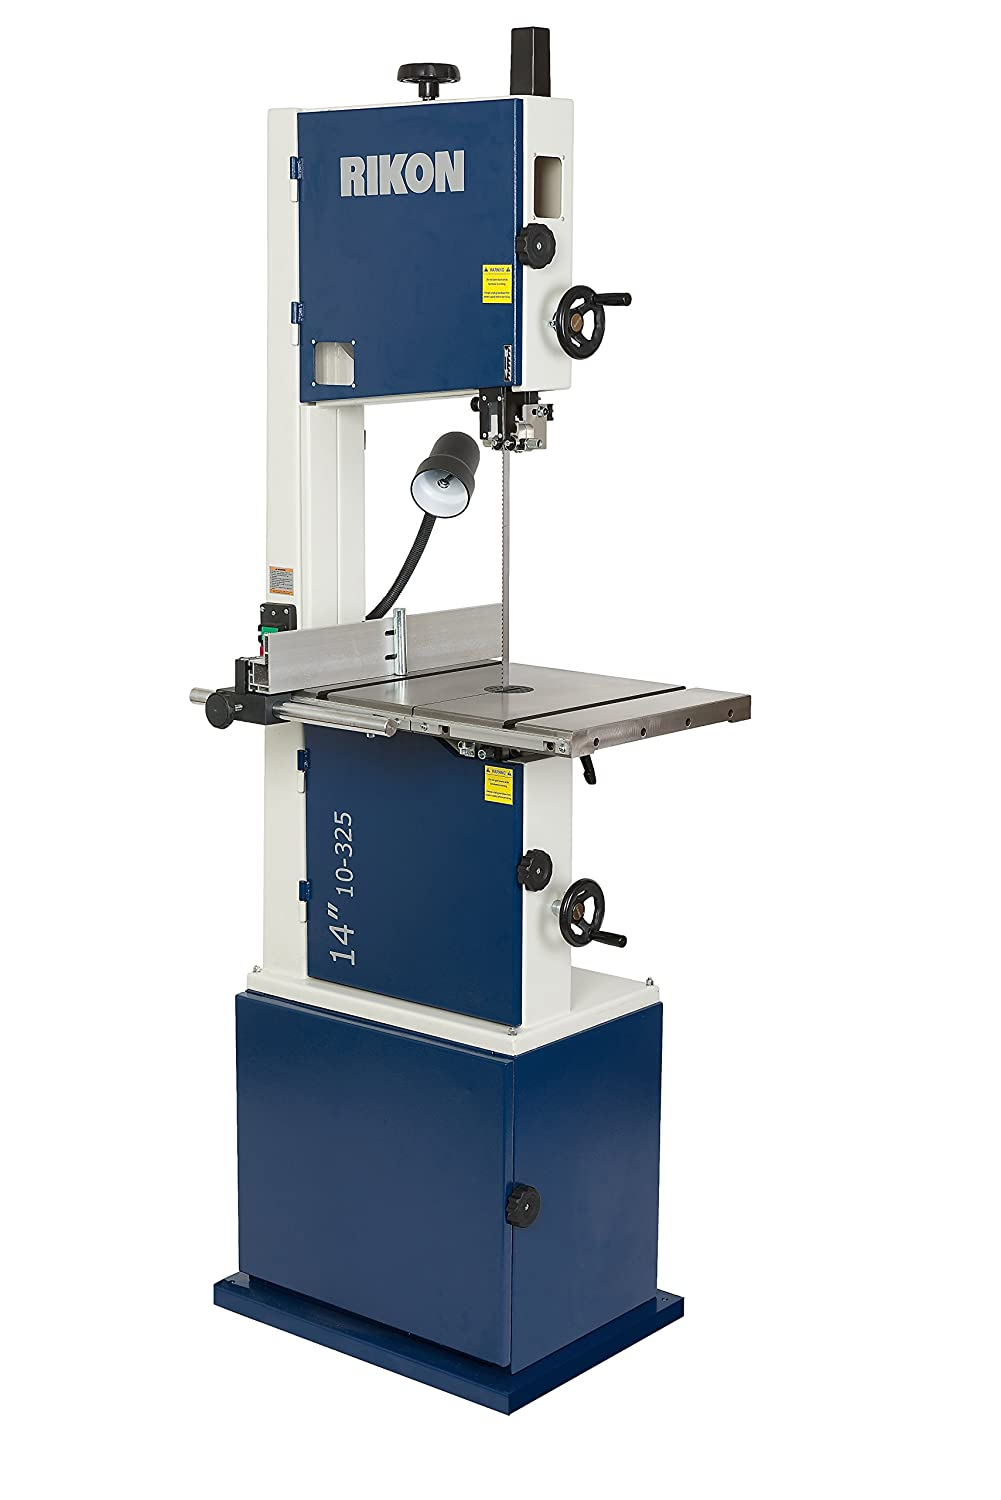 Rikon 10 325 14 Inch Deluxe Band Saw Review